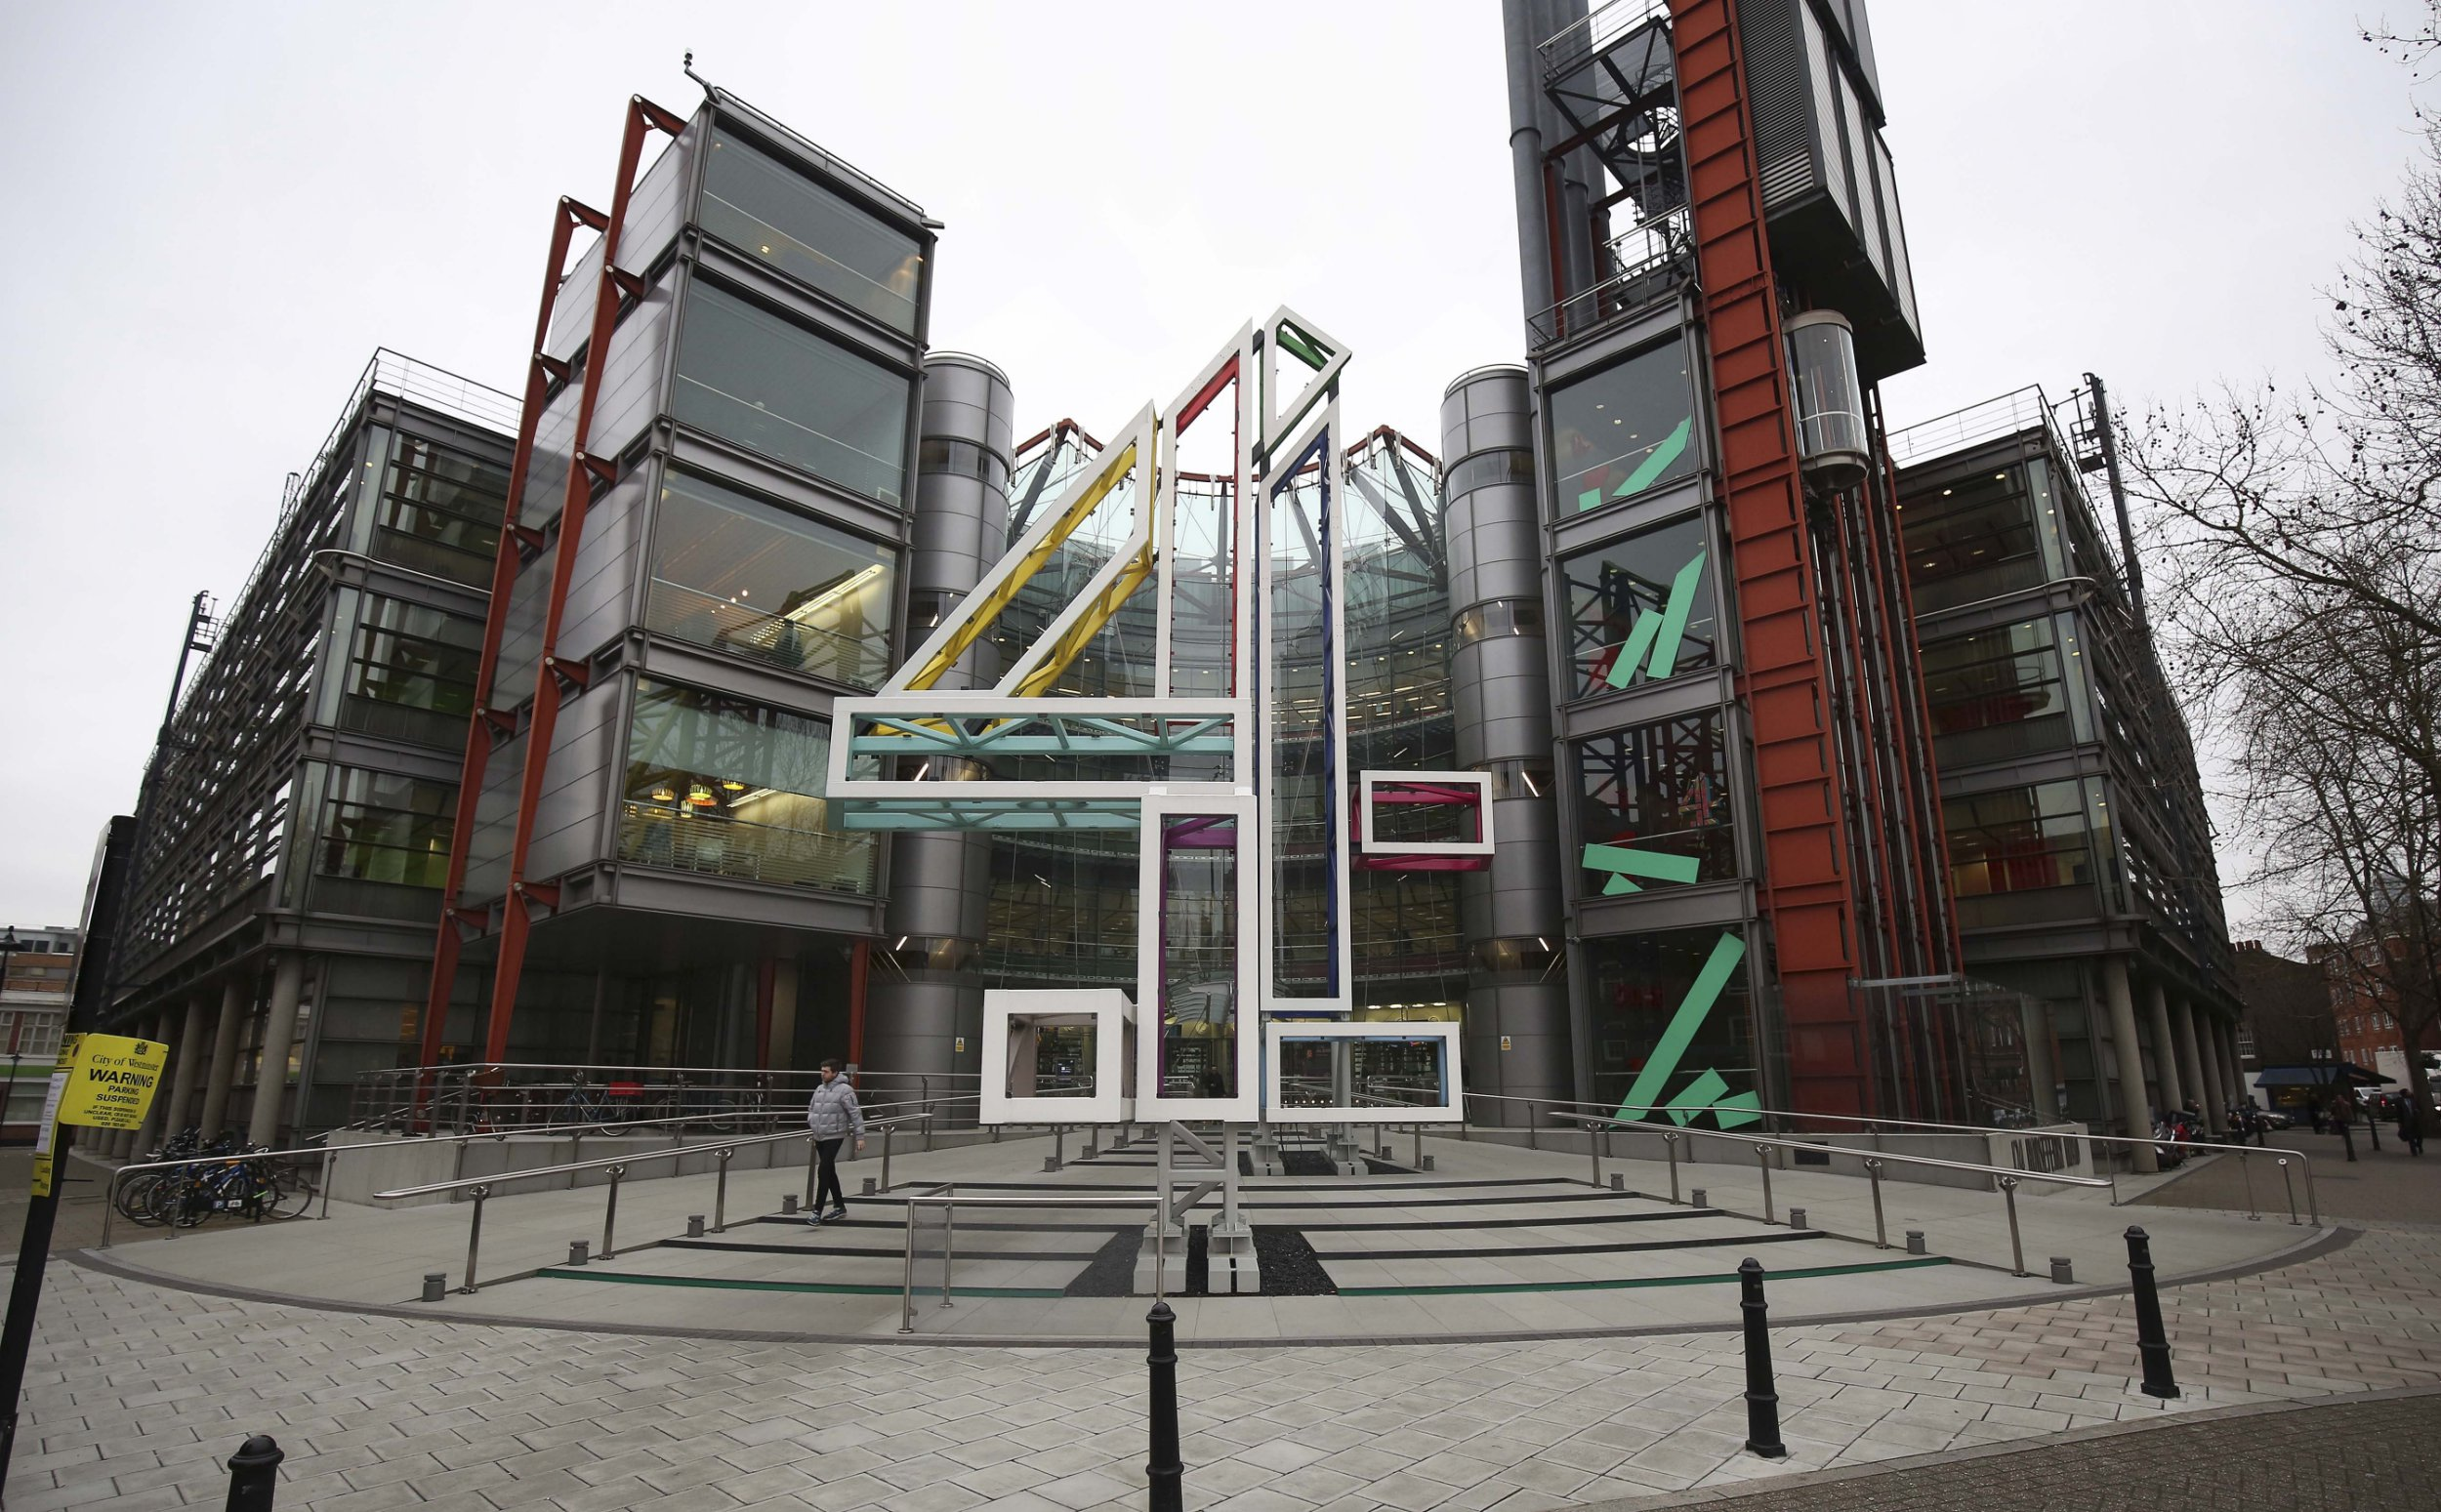 Channel 4 chooses Leeds for new headquarters after snubbing Birmingham